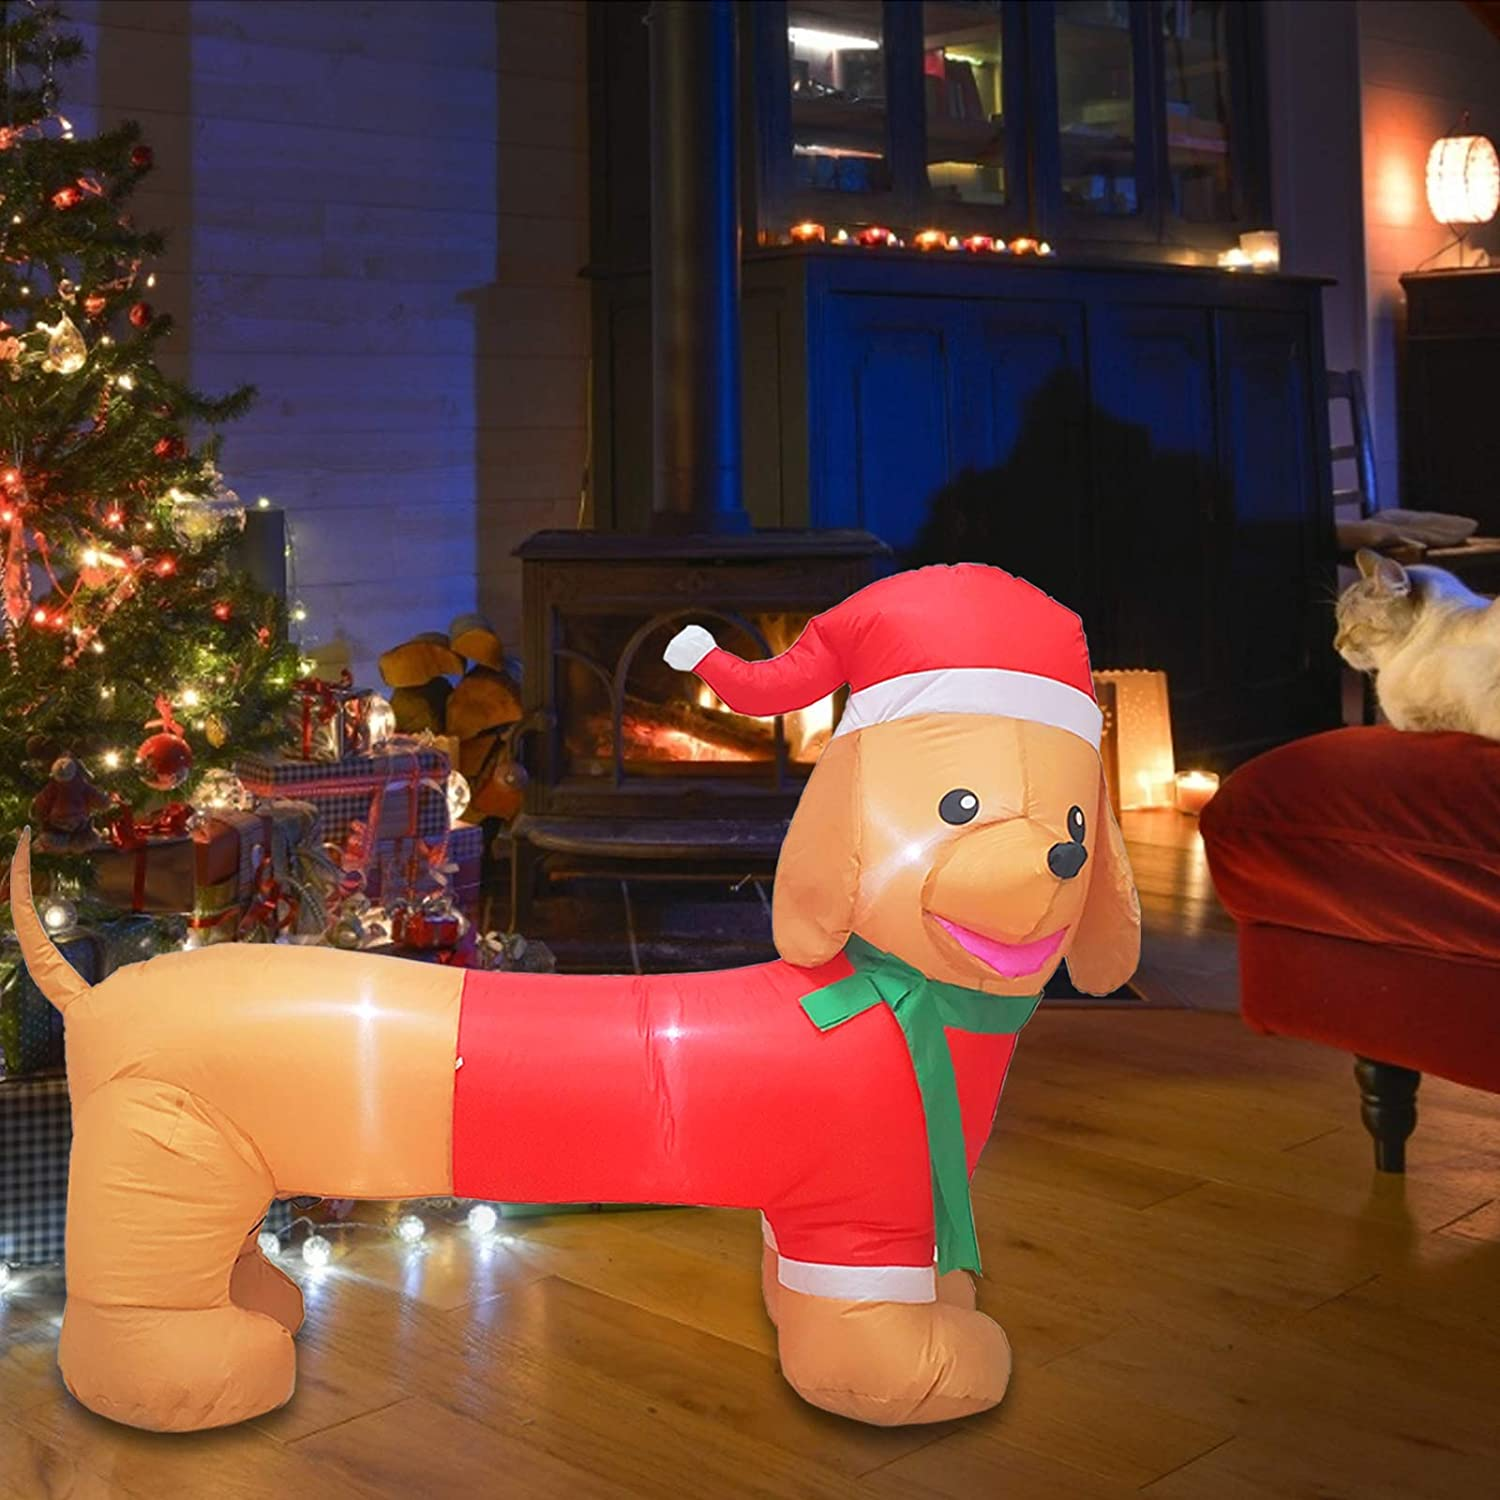 Poptrend 5ft Long Wiener Dog Self-Inflatable with Suit Perfect for Dachshund Blow Up Yard Decoration, Indoor Outdoor Yard Garden Christmas Decoration and Christmas Party Favor Decoration